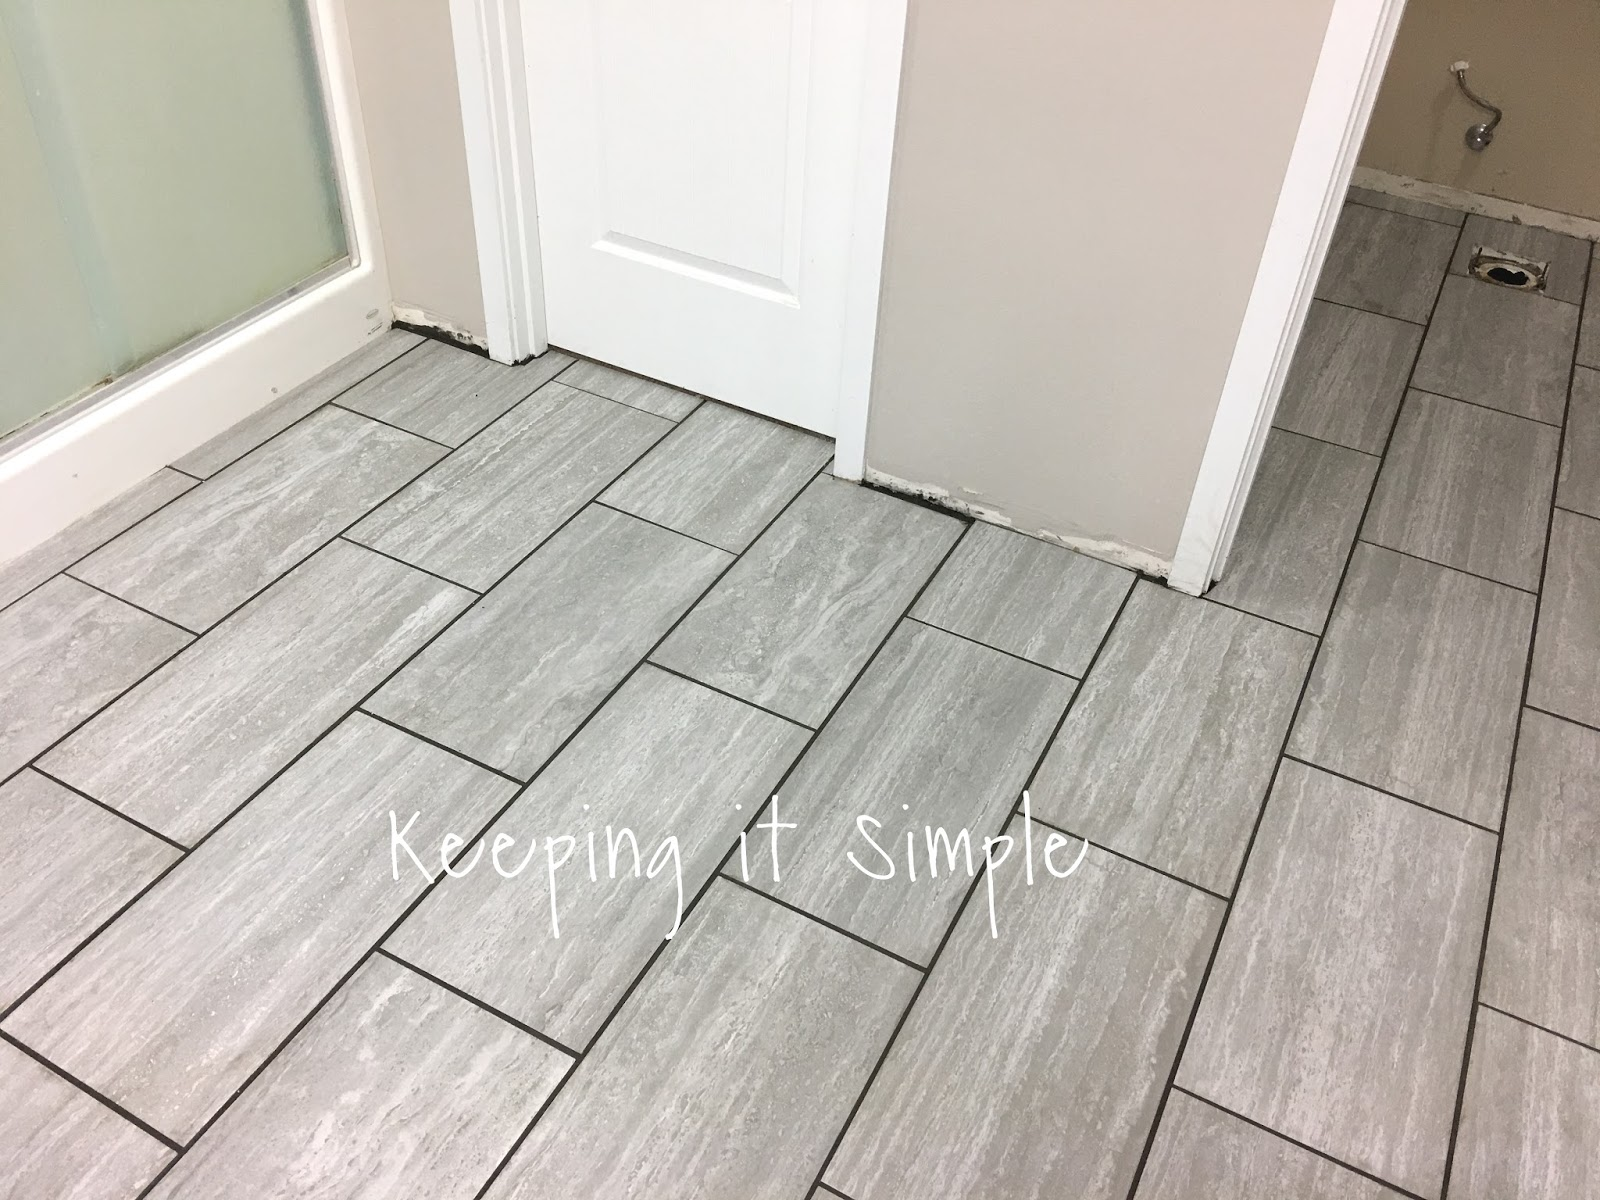 Tips on how to install tile flooring in a bathroom with ridgemont once the grout had set for about 36 hours we sealed the grout lines and then we put the toilet back on we ended up getting a new toilet dailygadgetfo Image collections